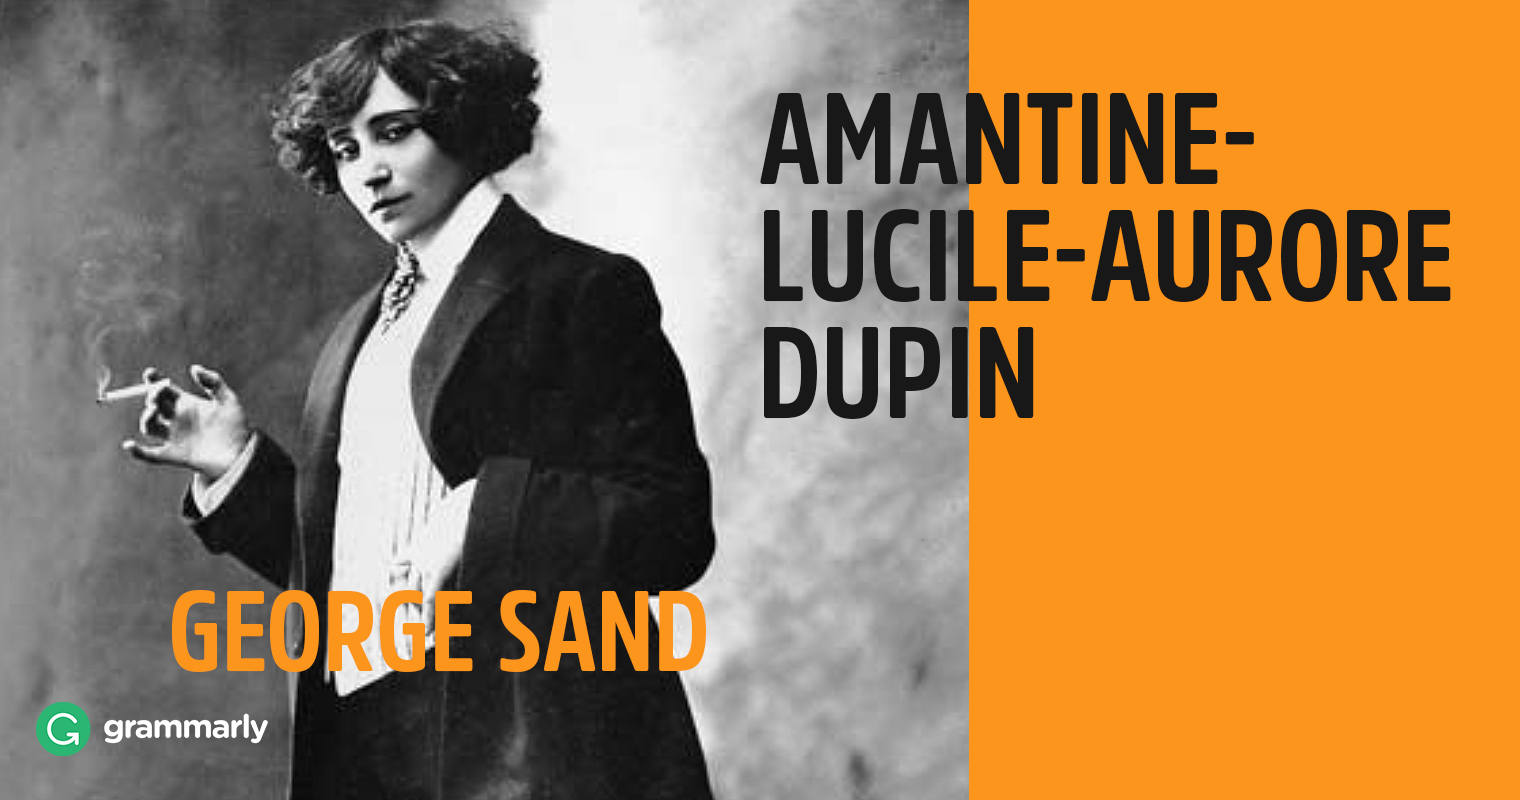 Amantine-Lucile-Aurore Dupin and George Sand